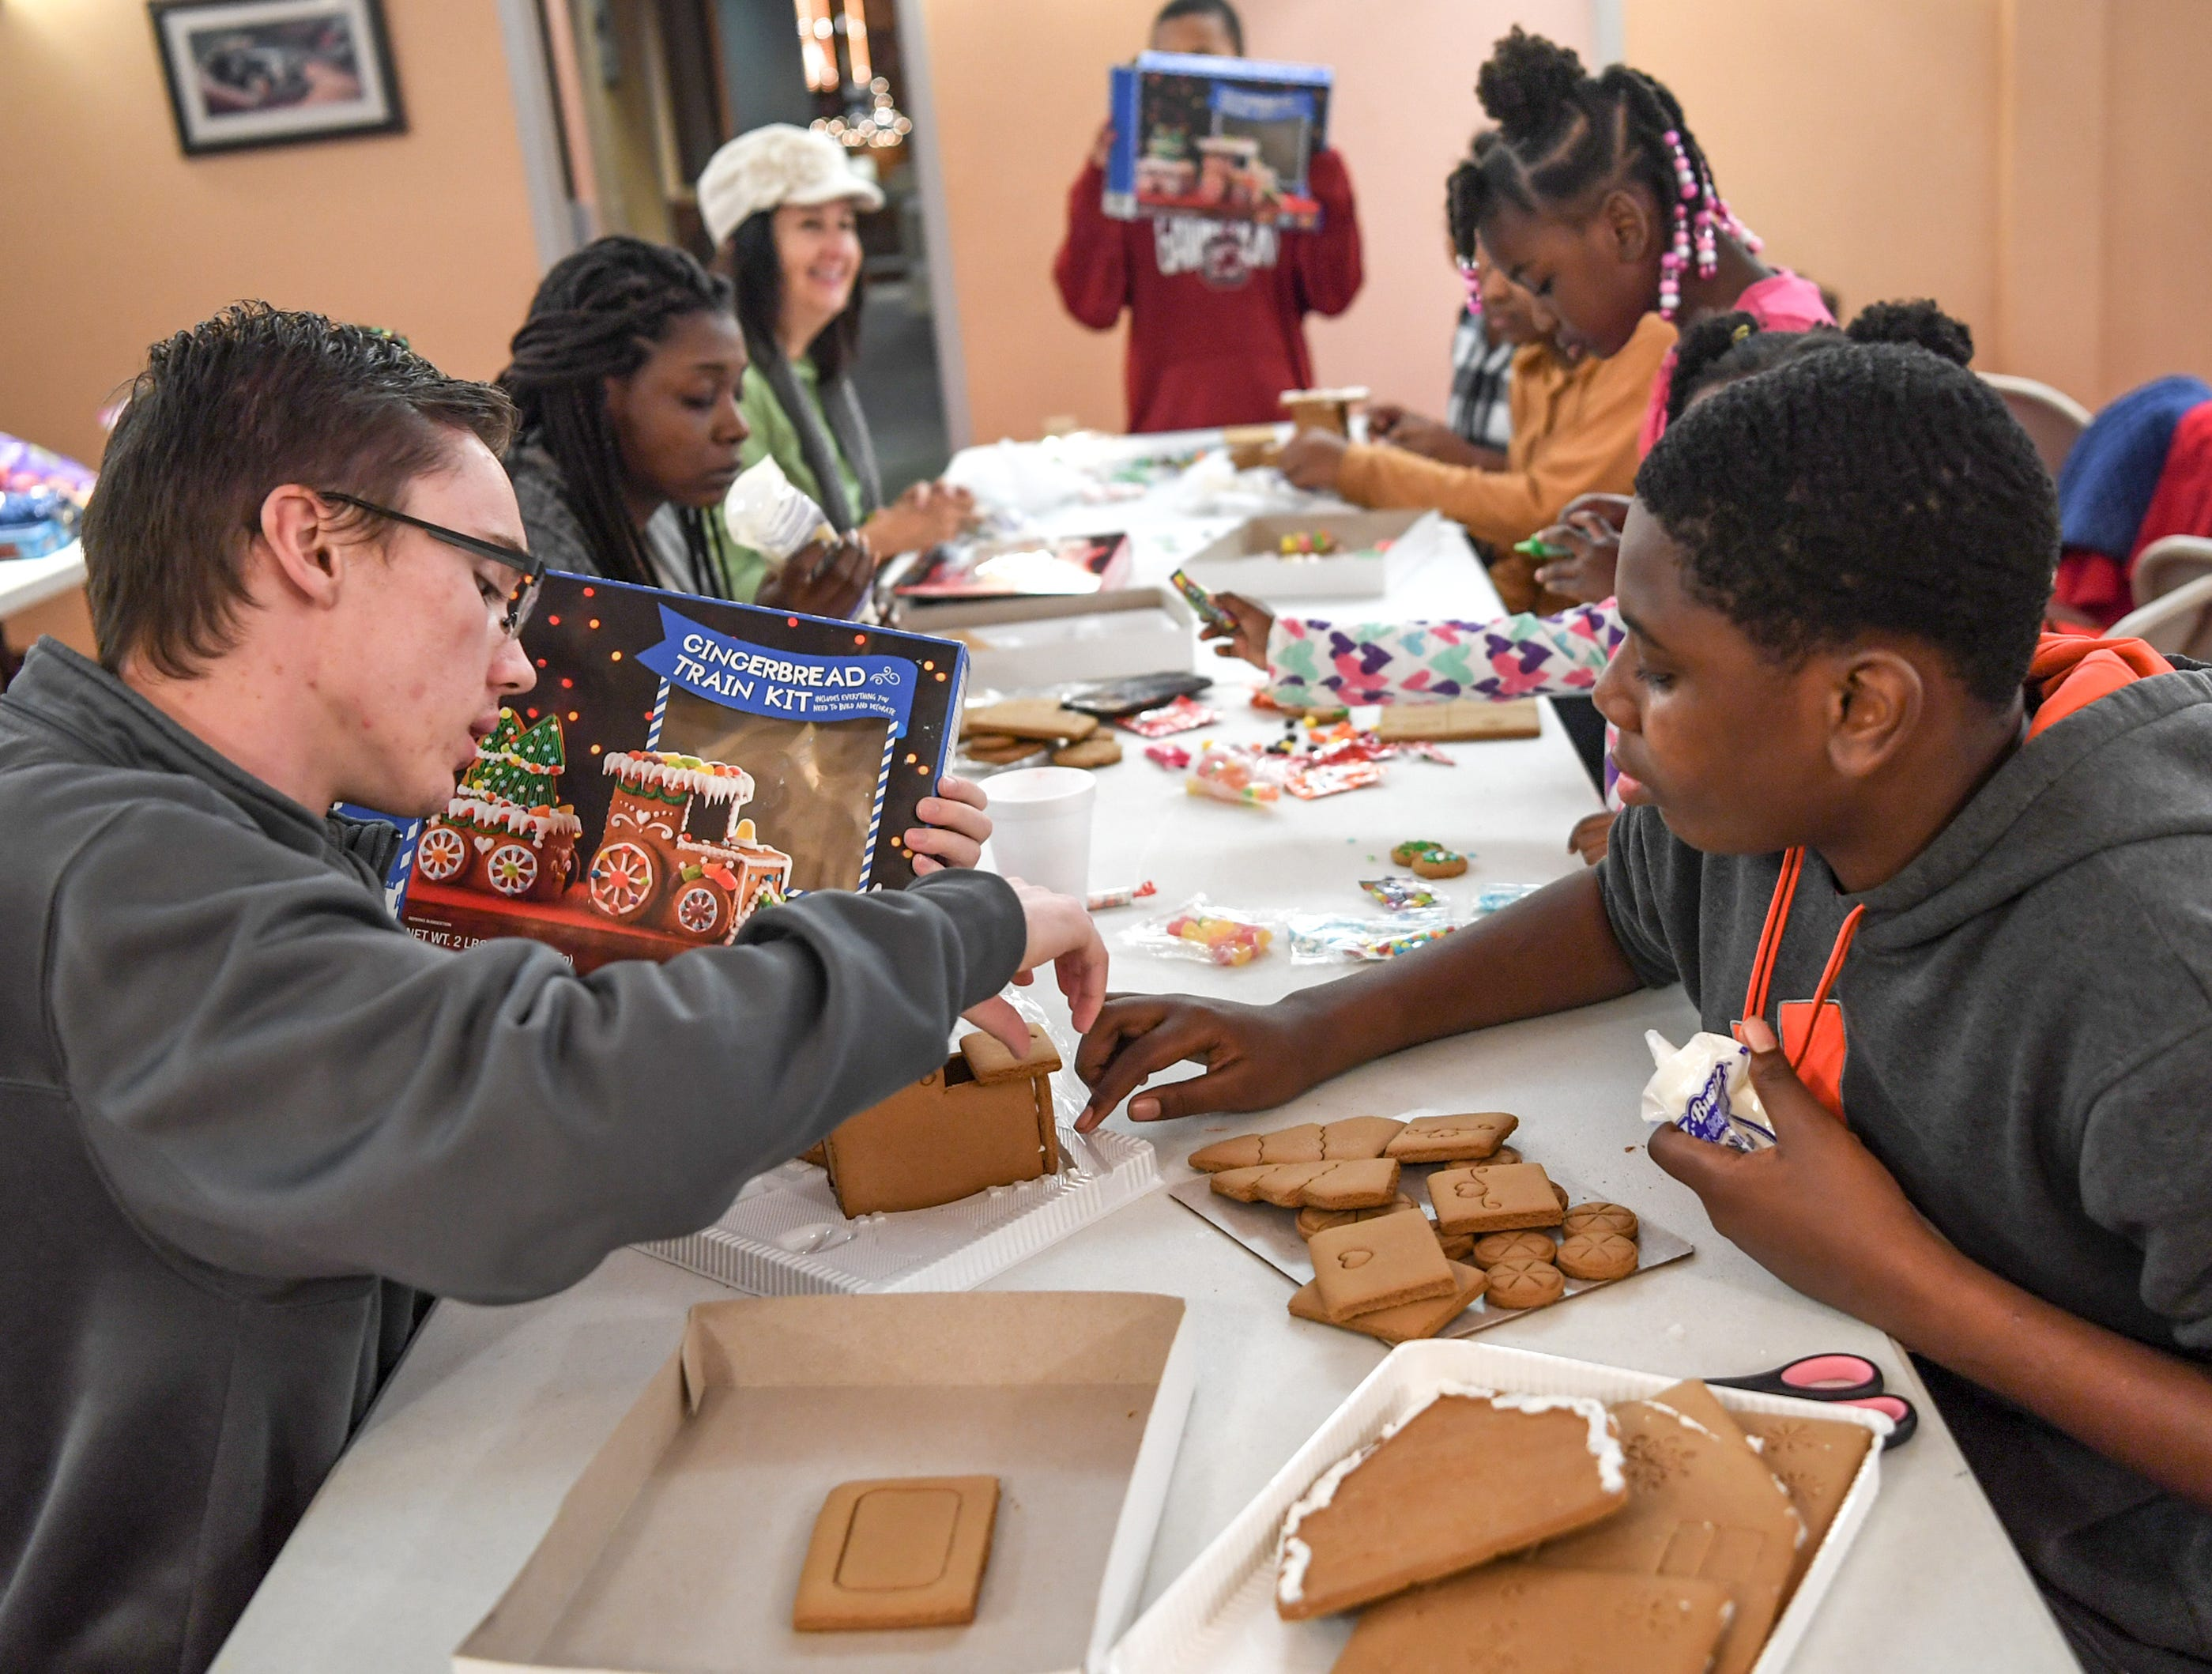 Ryan Null, left, of Williamston, and his little brother Kazianes Hemphill, make their own train shaped gingerbread creation, during the Big Brothers Big Sisters of the Upstate gingerbread house decorating party at the Anderson County Museum in Anderson on Tuesday. Older mentors spend six hours or more a month with their little brother or sister, including the group activity with materials donated by local businesses. The group matches up mentors in Anderson, Oconee, and Pickens Counties.